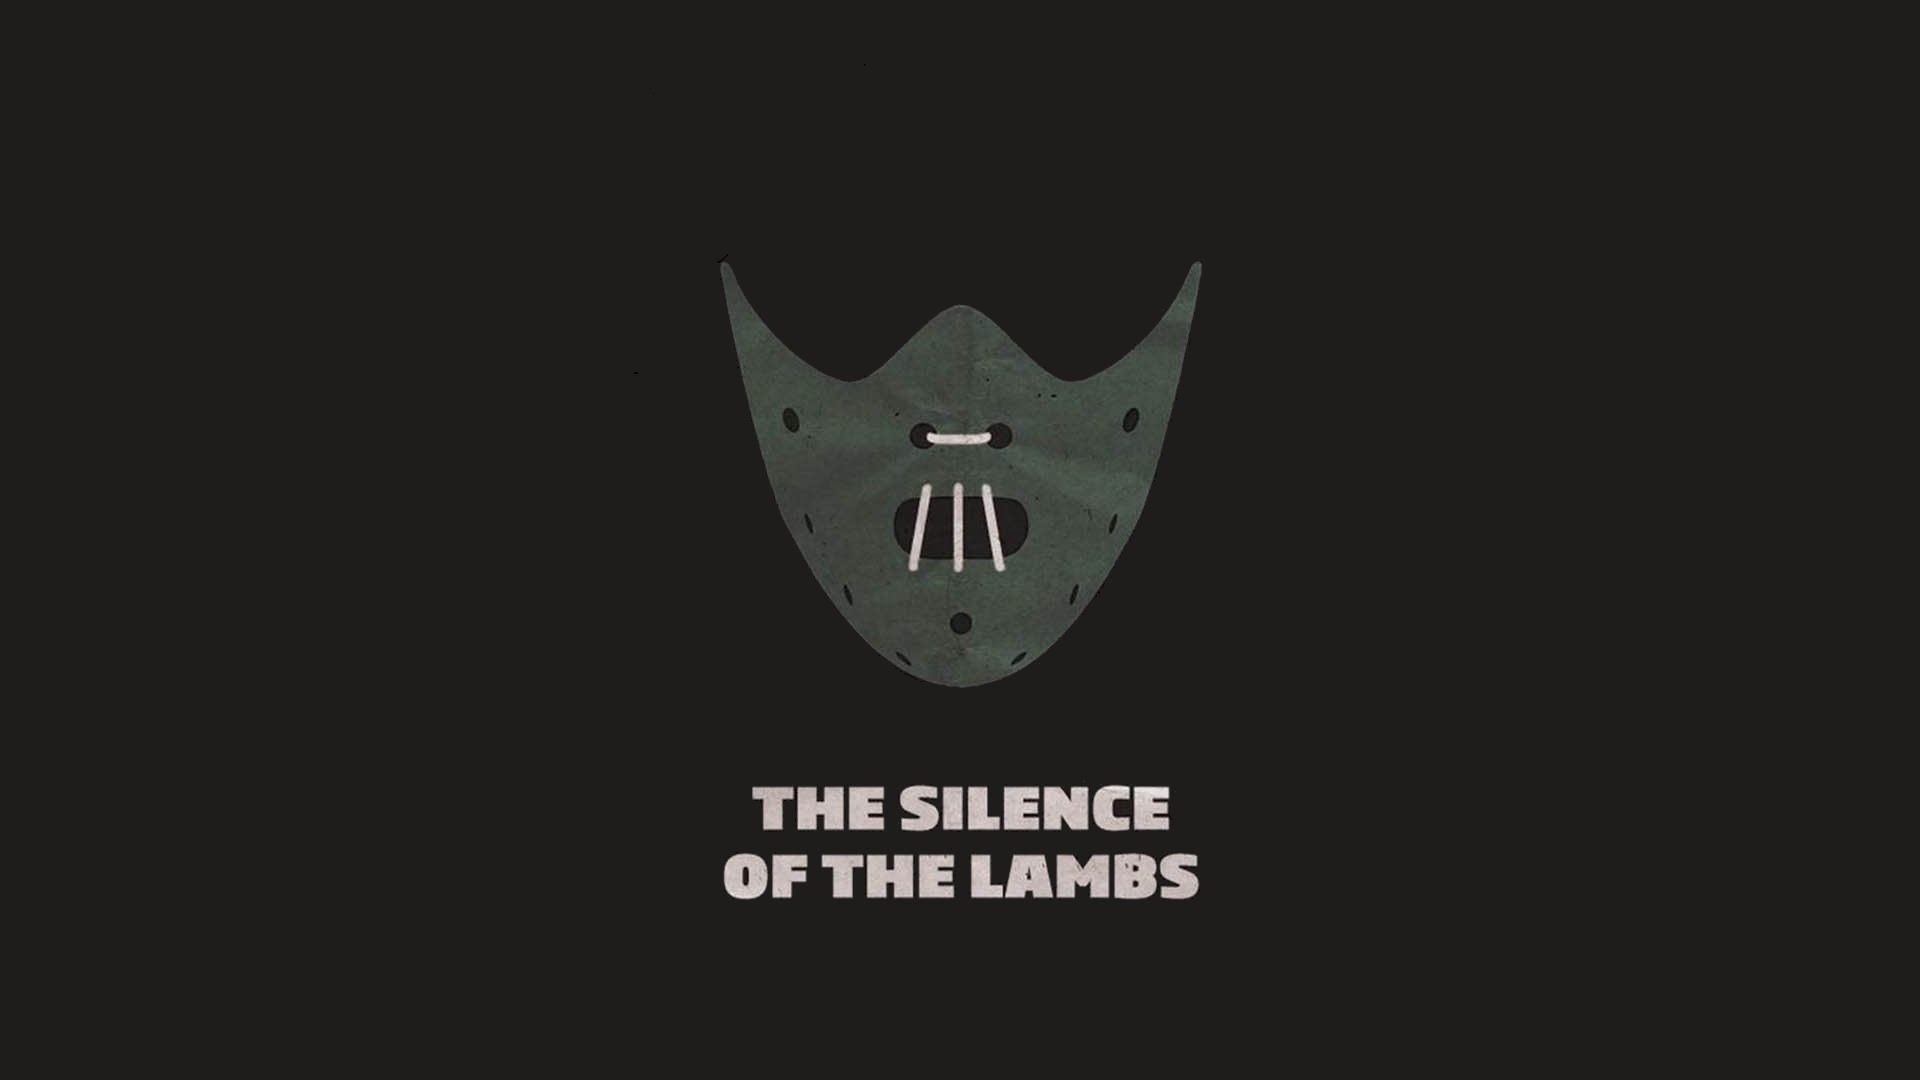 The Silence Of The Lambs Wallpaper 11   1920 X 1080 stmednet 1920x1080